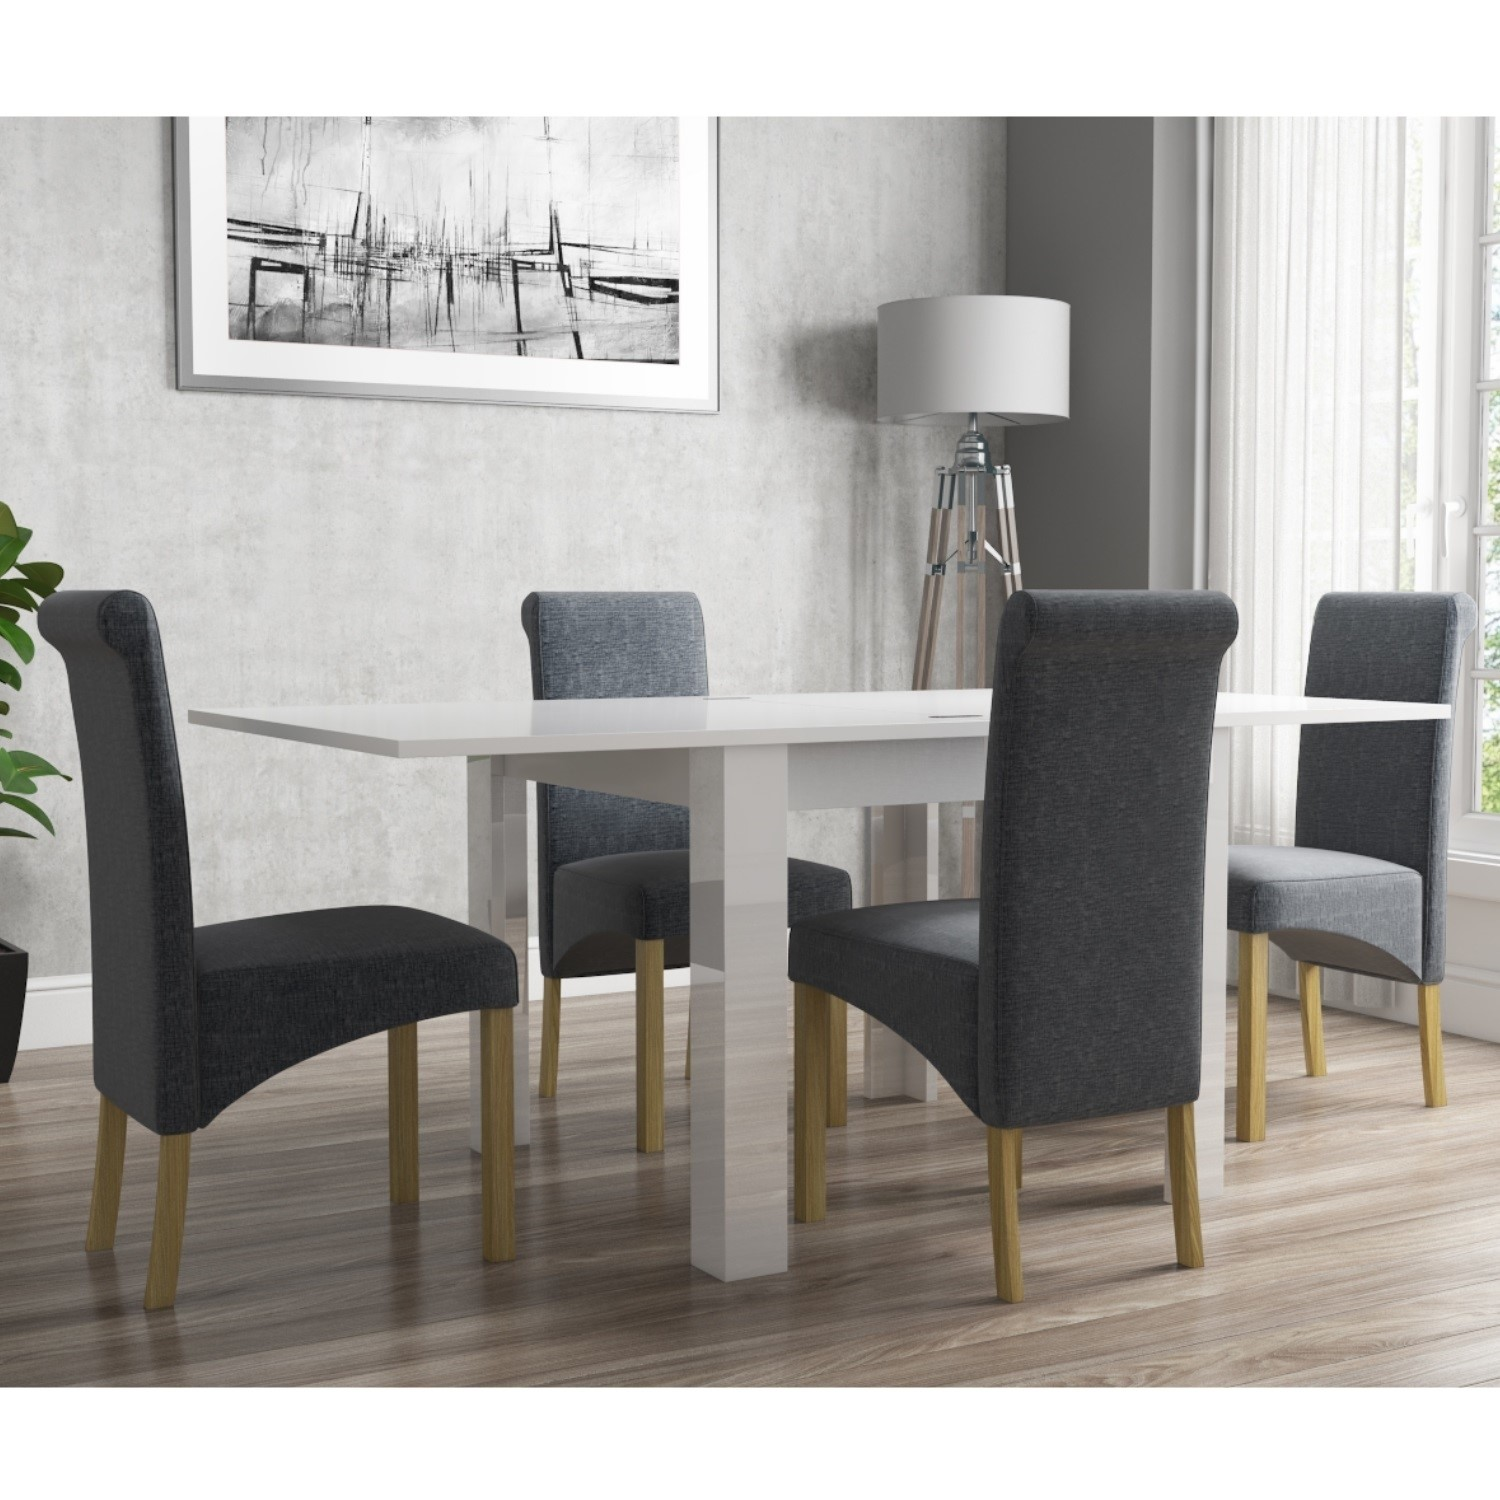 Picture of: Vivienne Flip Top White Gloss Kitchen Dining Table And 4 Grey Roll Back Chairs 5056096014112 Ebay